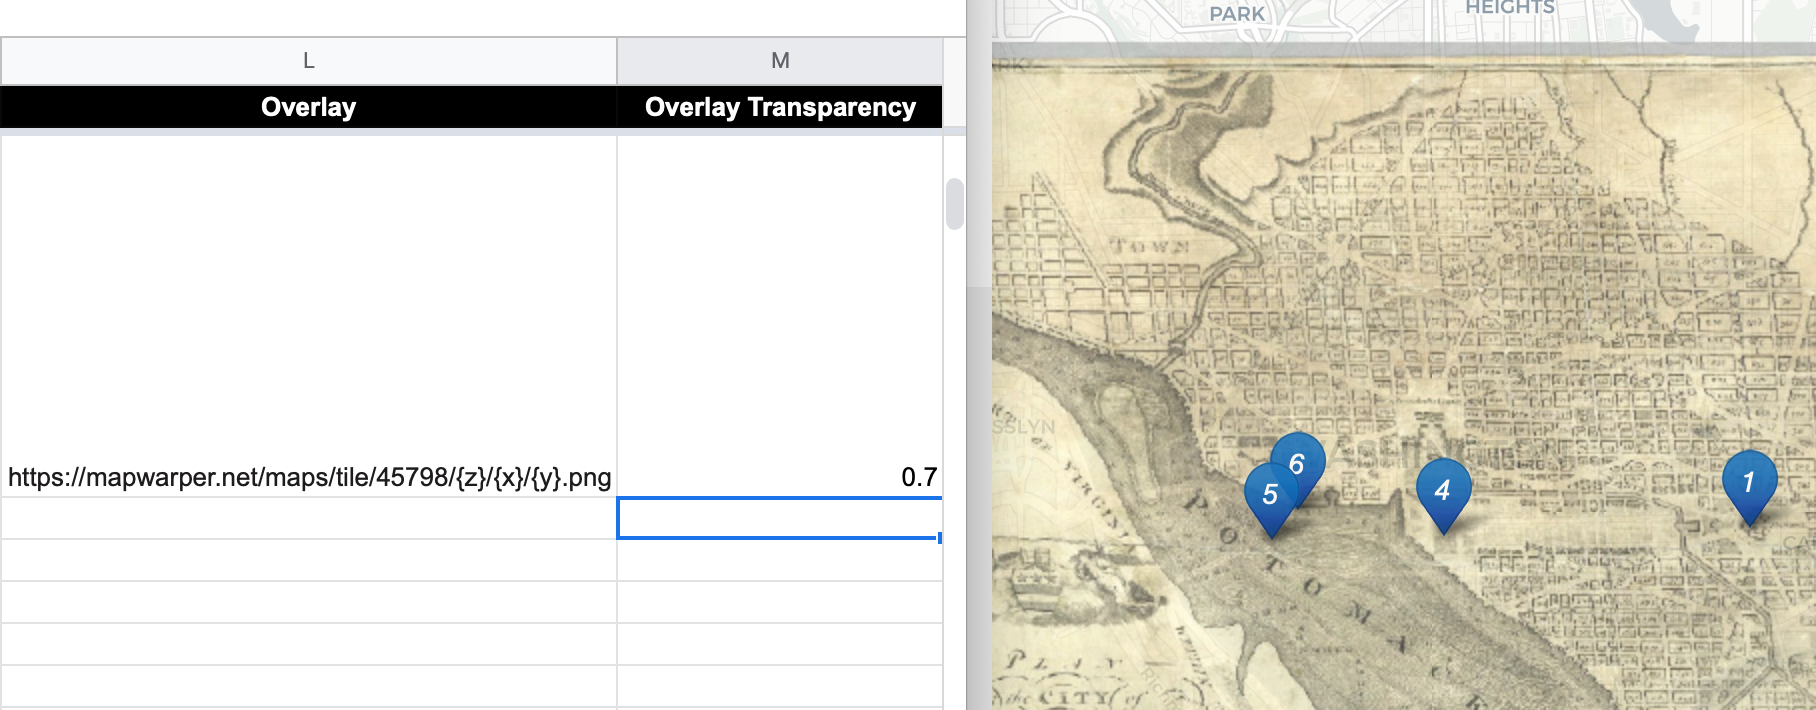 Enter map tile link and transparency level into the Google Sheet template (on left) to display it in one or more storymap chapters (on right).